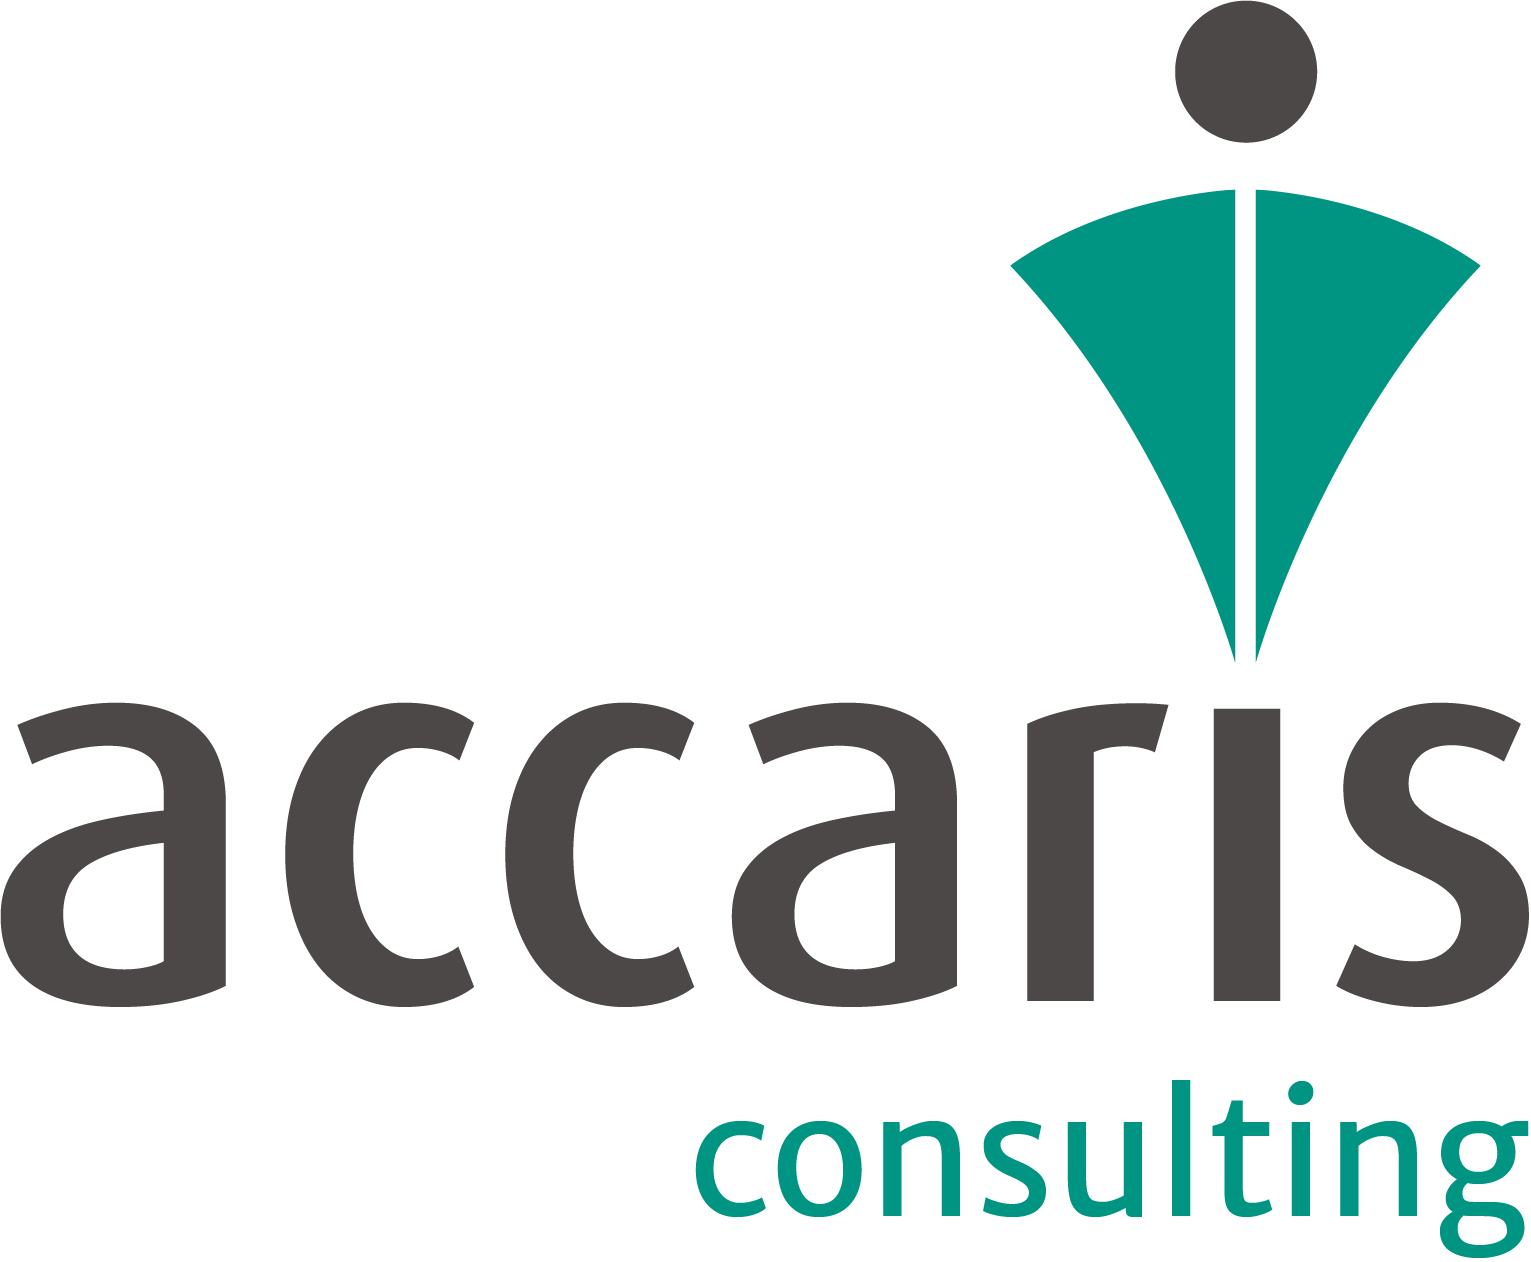 accaris-consulting